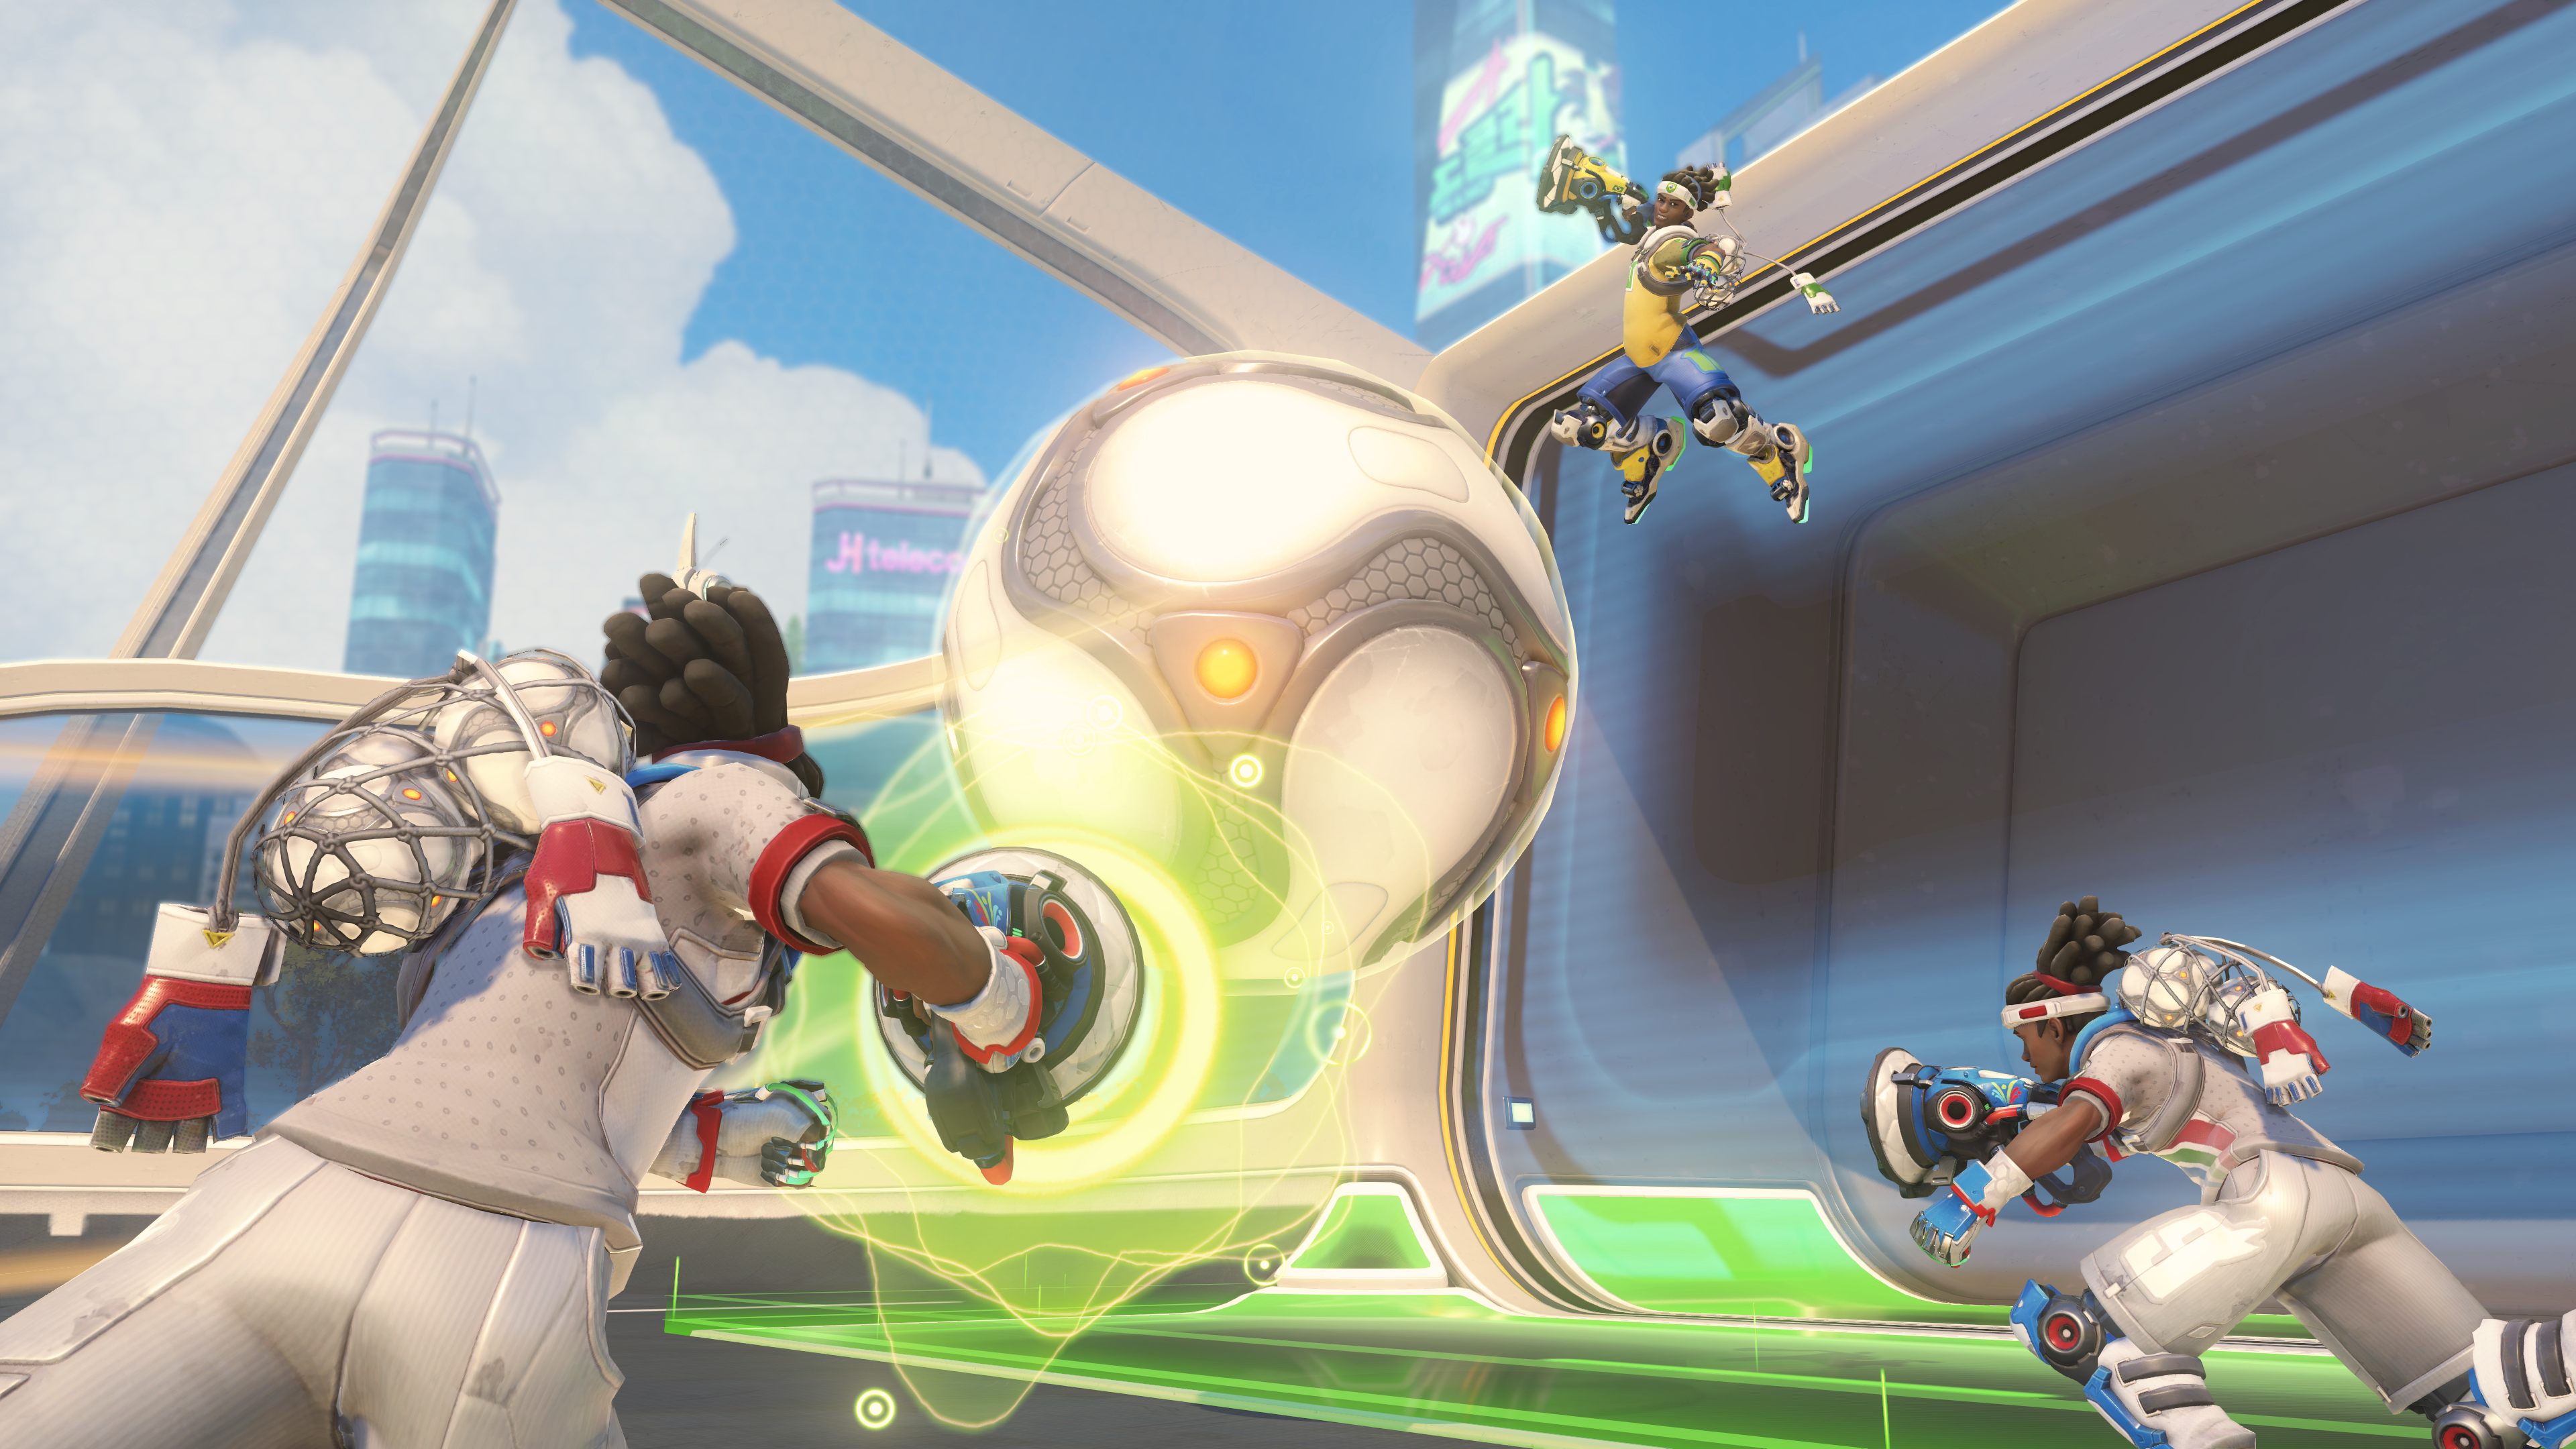 Overwatch Summer Games 2018 Is Live, Comes with More New Skins